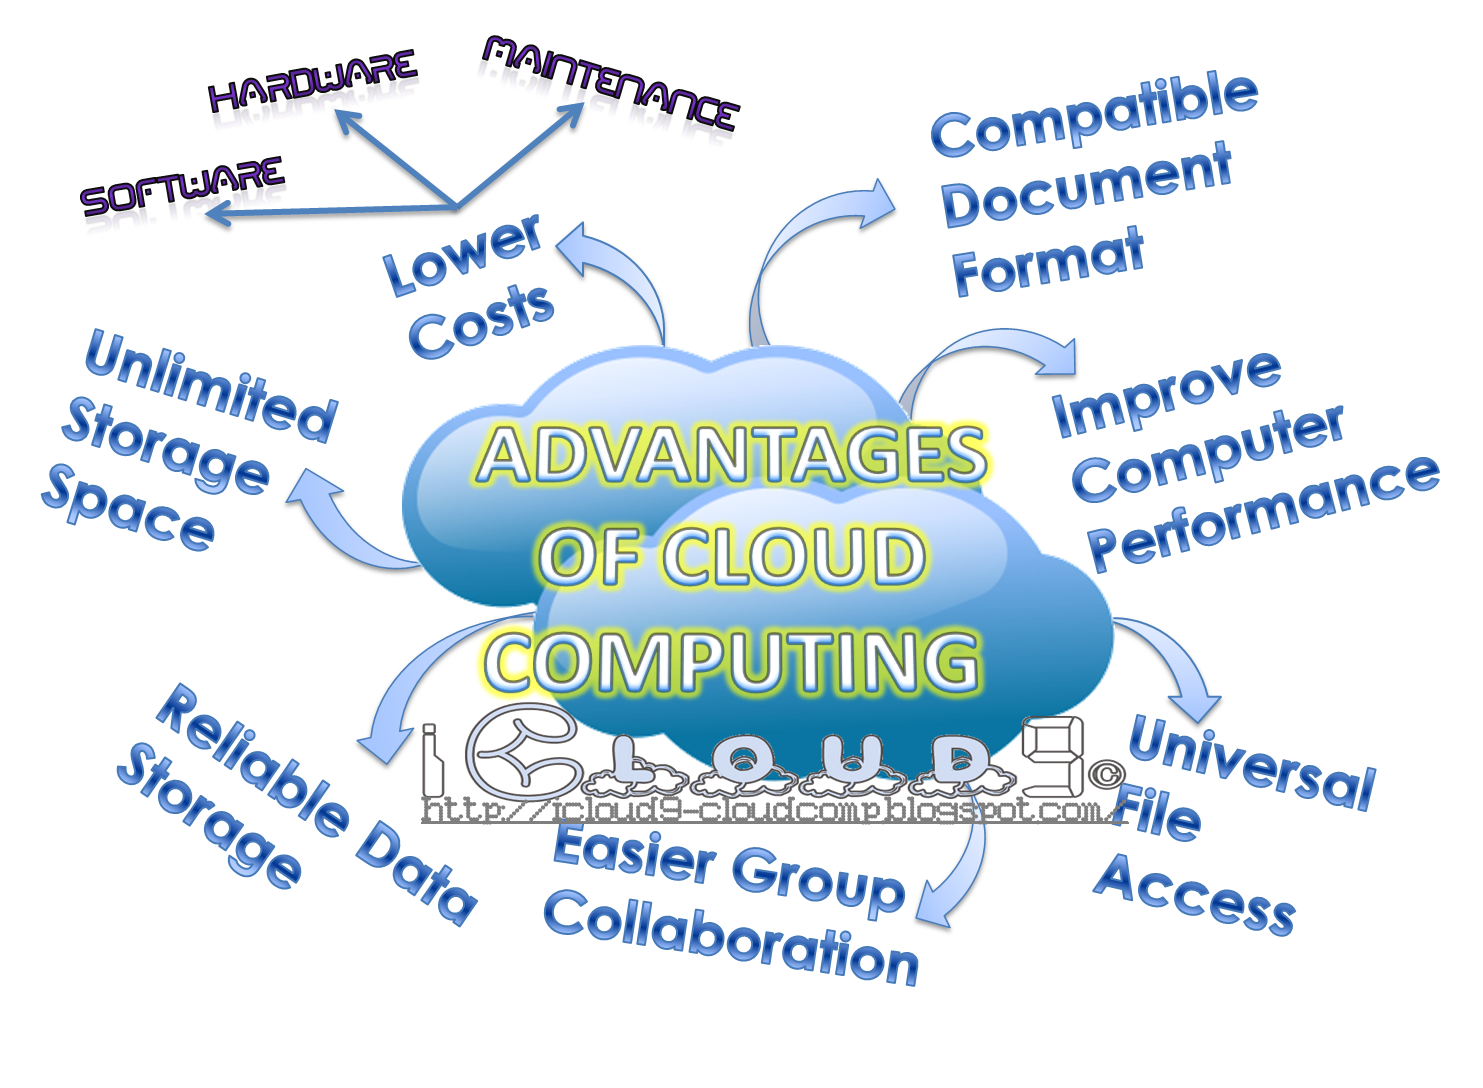 Icloud9 What's Good About Cloud Computing??. Software Proposal Sample Roofing Dallas Texas. Business Plan Template Sample. Landscape Design Websites Lower Student Loans. Accidents In Construction Arrow Self Storage. Creating Forms In Adobe Acrobat. Start A Business Without Money. Best College Online Programs. Cheap Mortgage Insurance Cost Of Home Windows